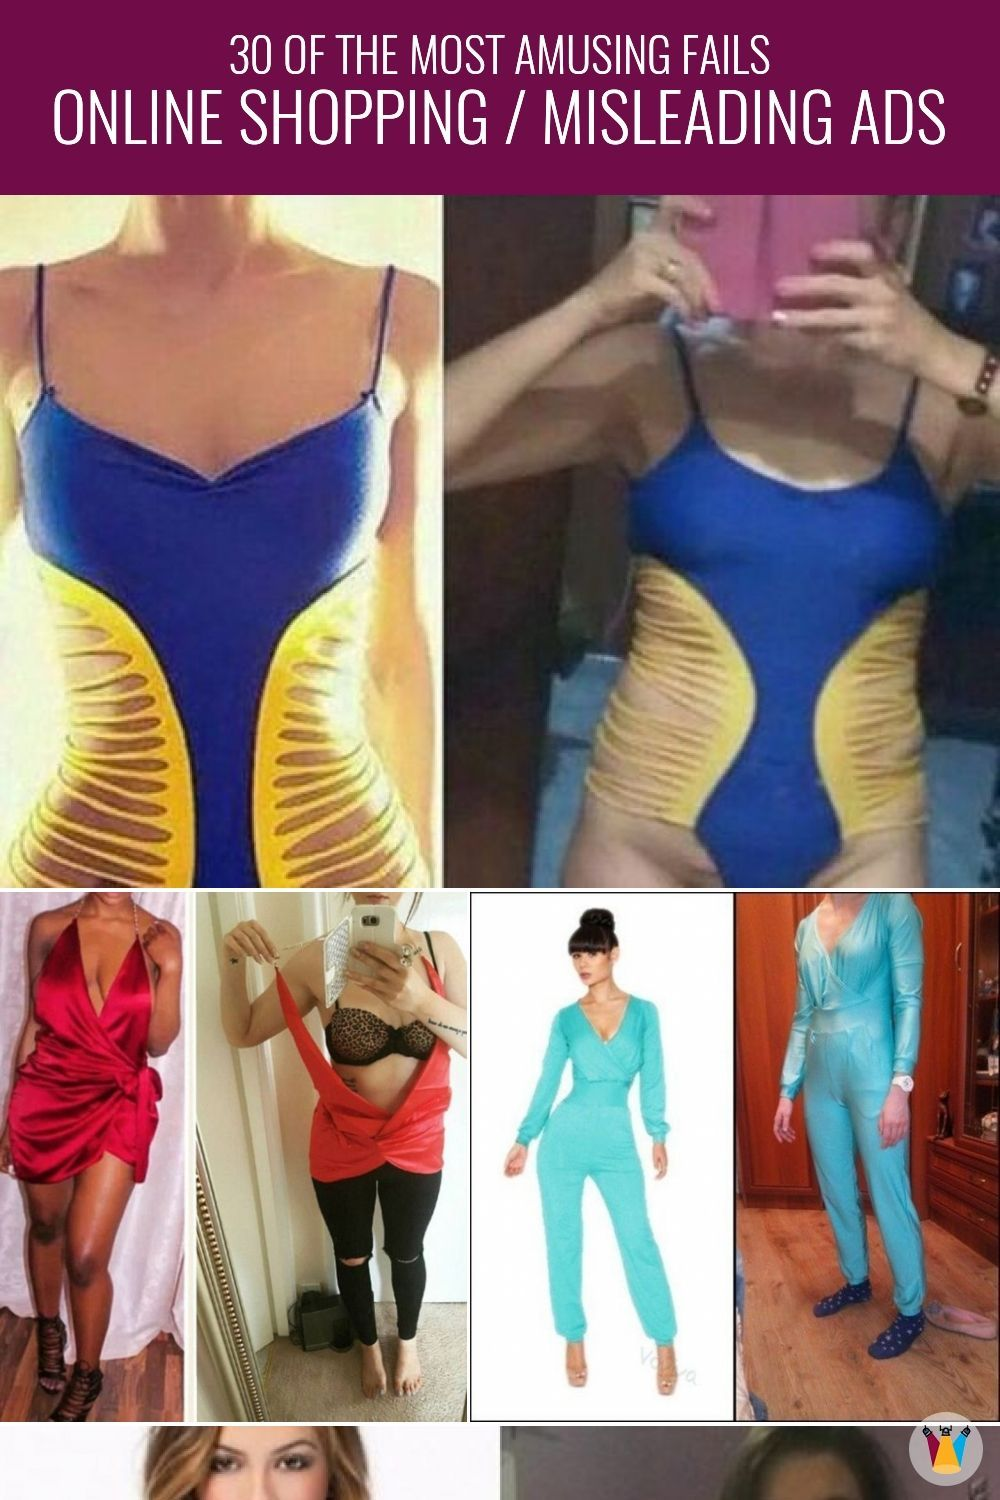 a list of 30 most hilarious online shopping fails that will make you go ROFL! #shoppingfails #